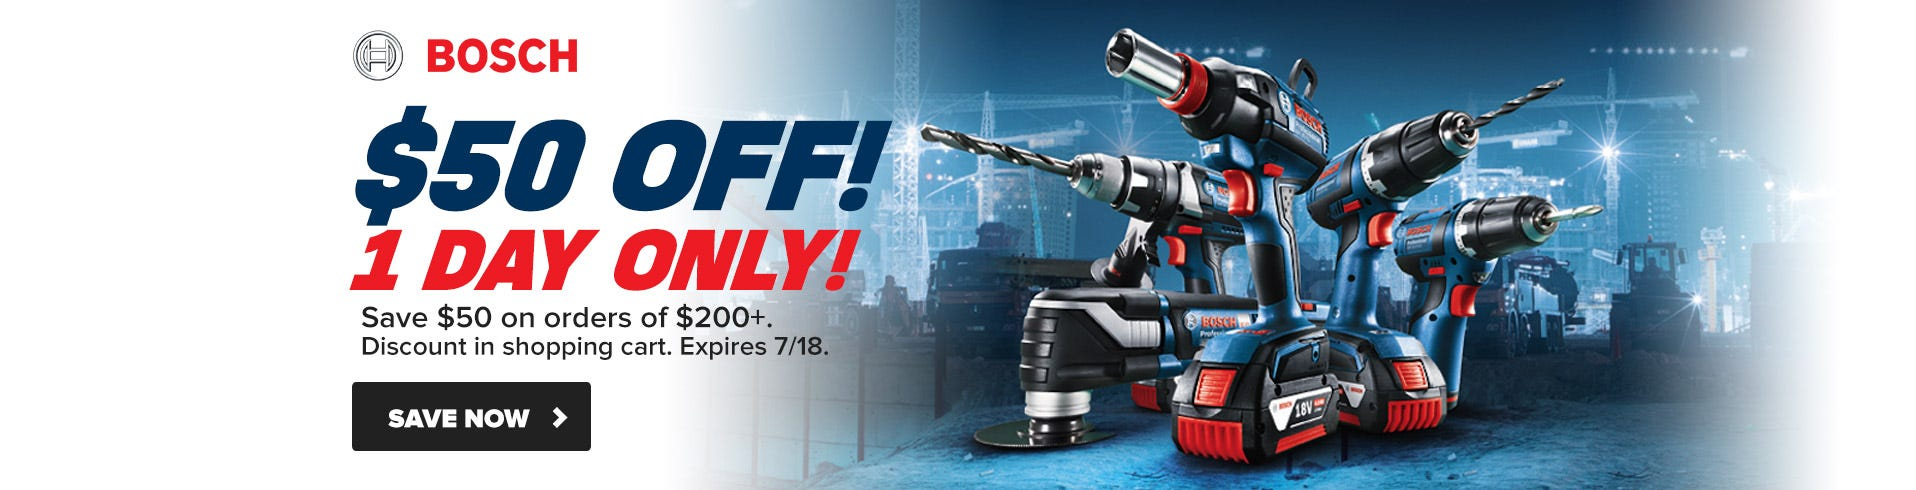 $50 OFF Bosch Flash Sale - ONE DAY ONLY!